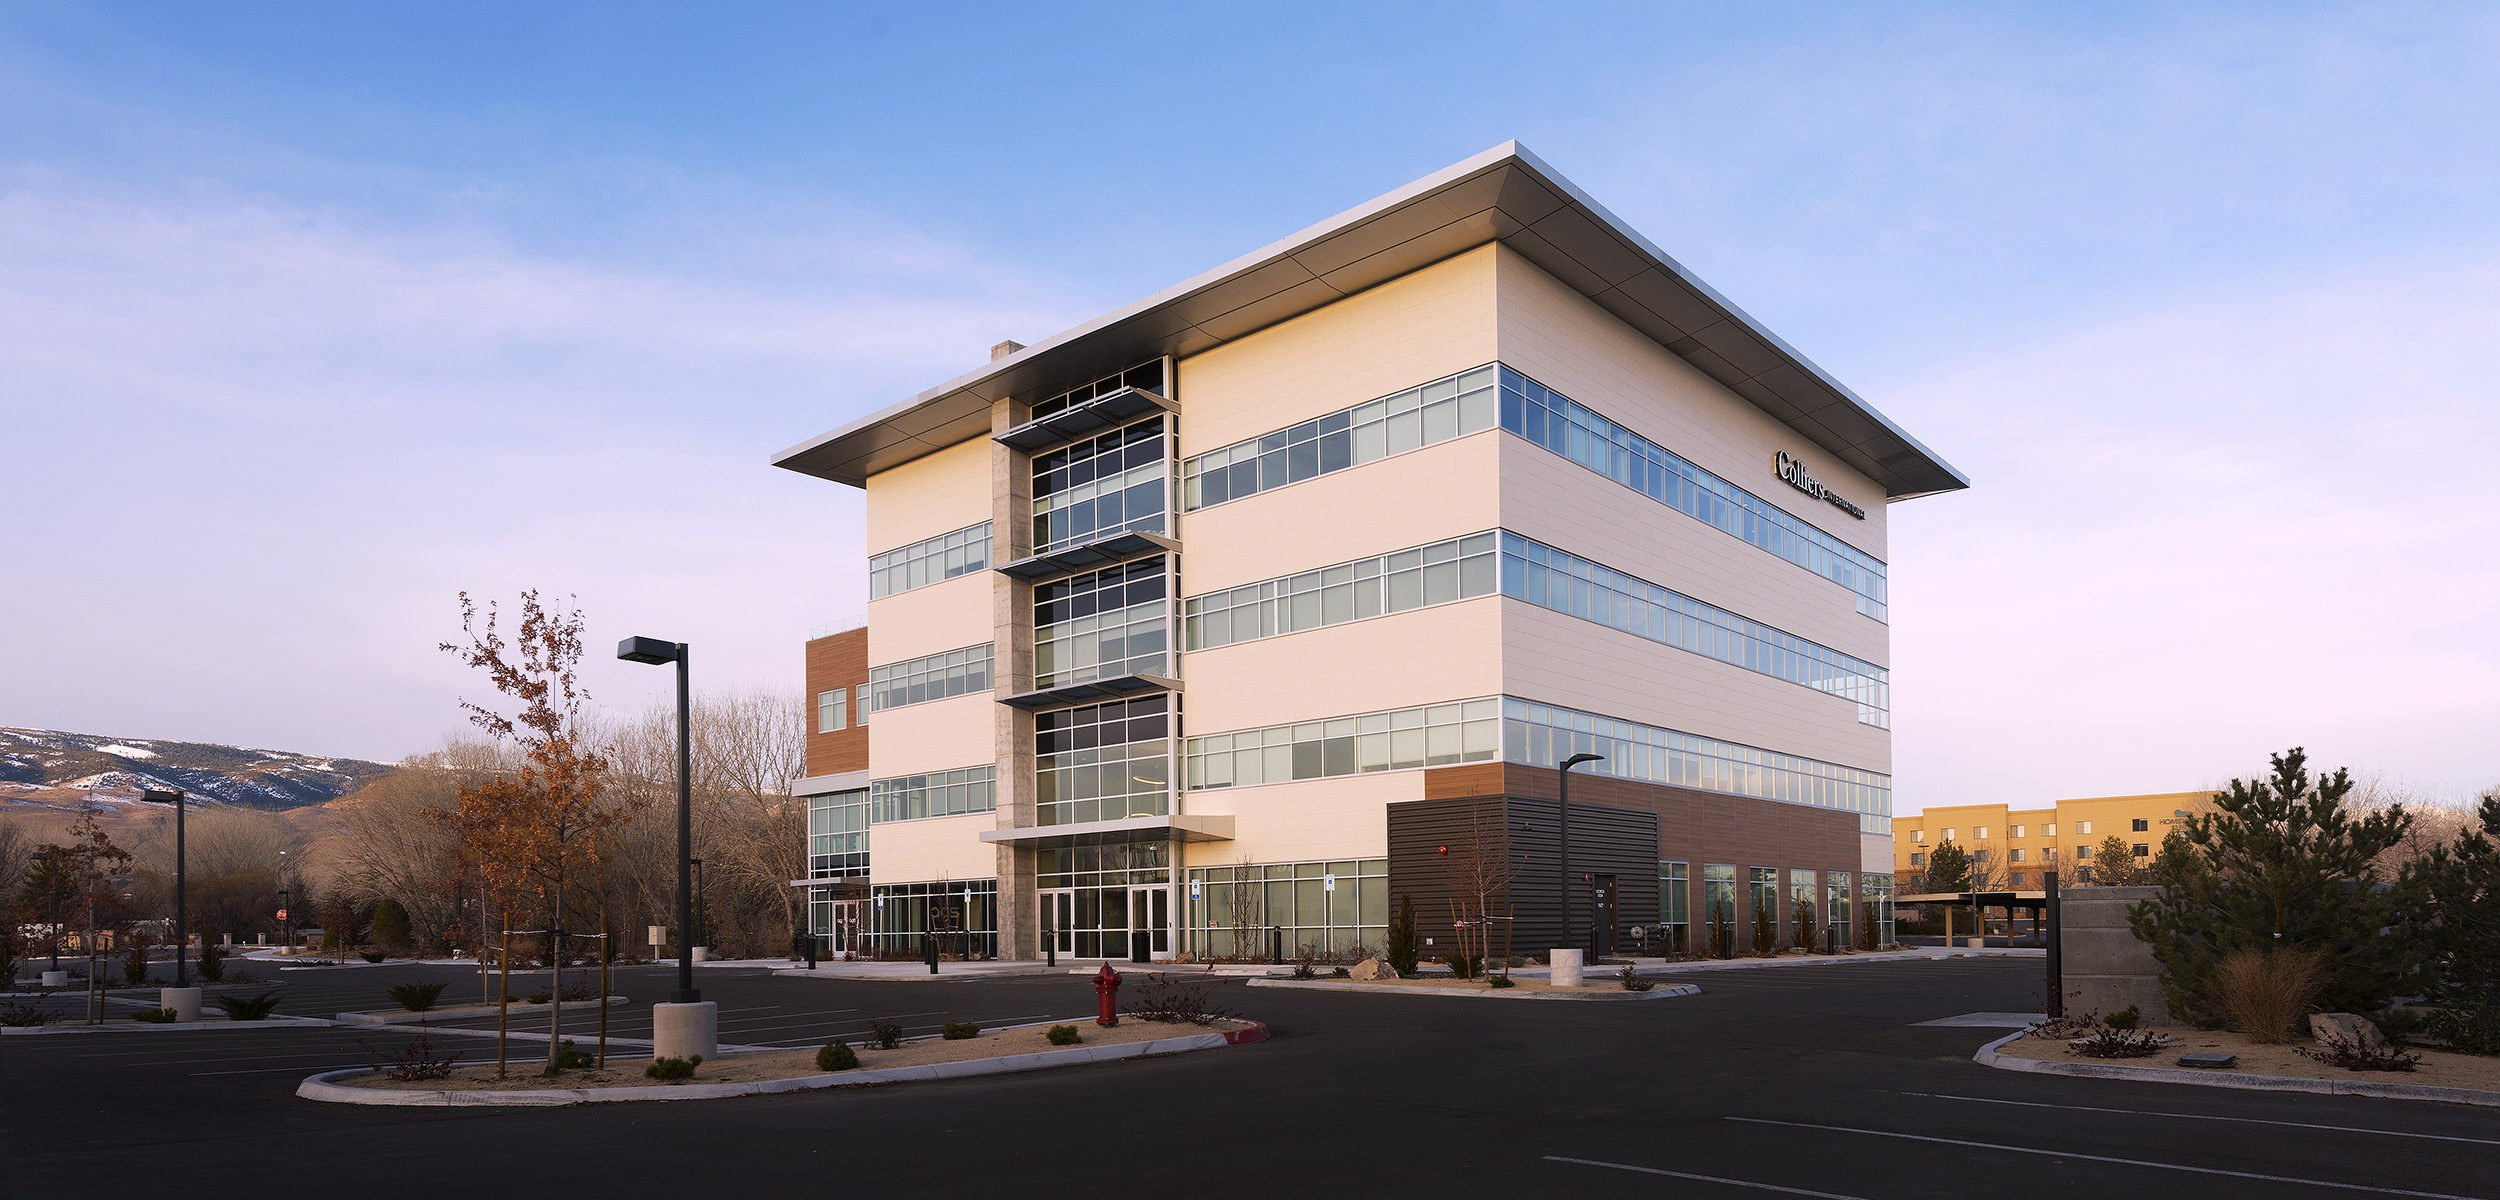 MVCC is a mid-rise office building in South Reno with an atrium, plaza, and overlook decks.